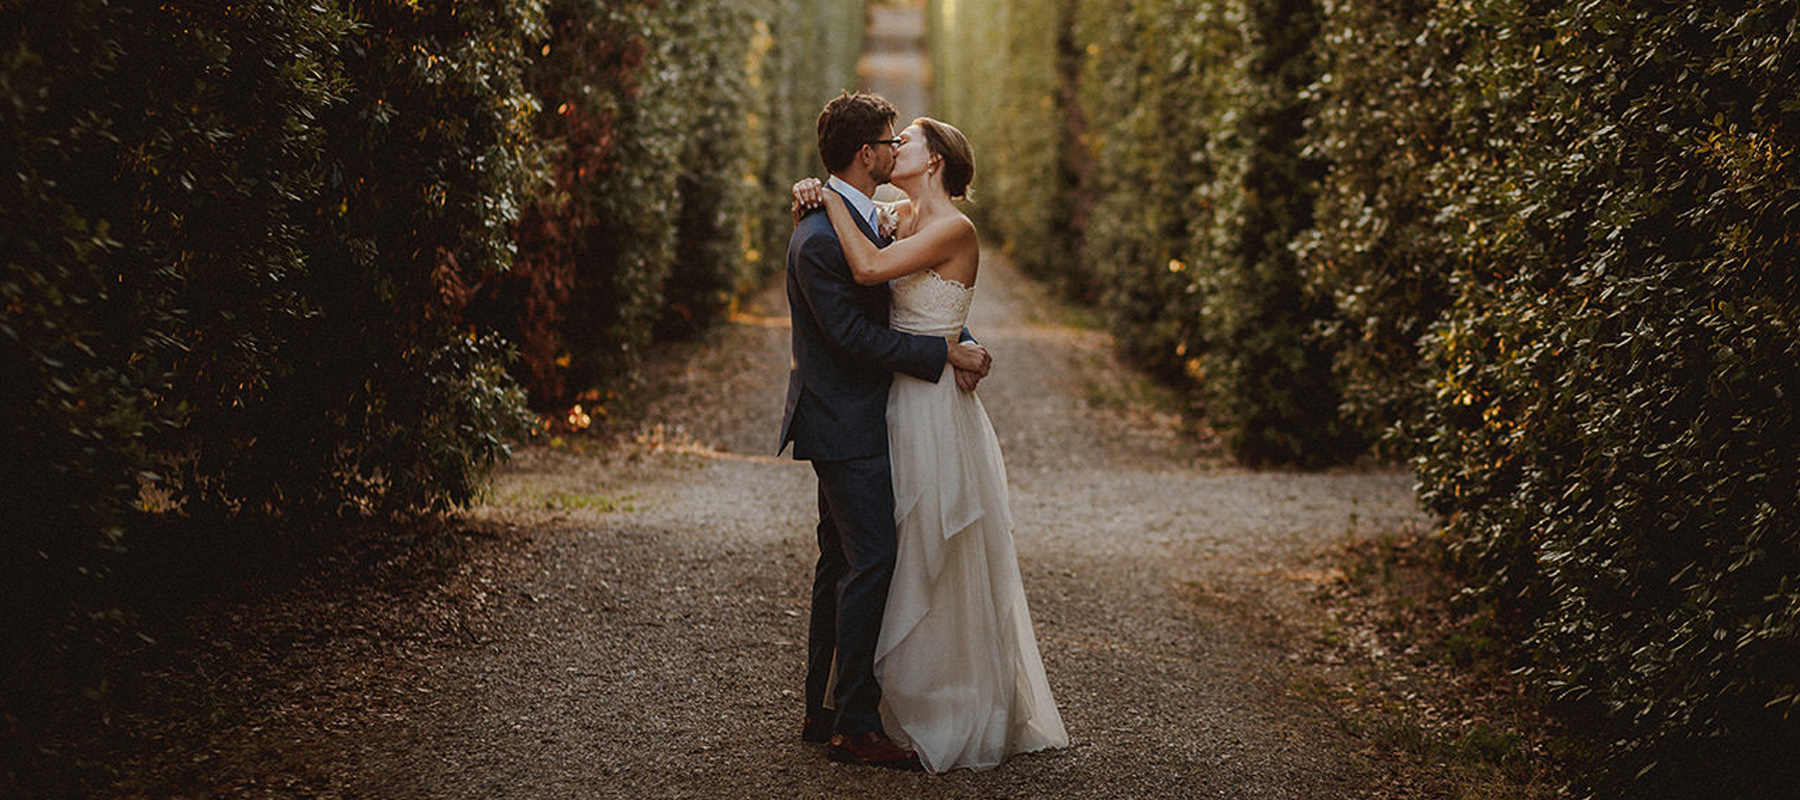 Destination Wedding Photography in Tuscany